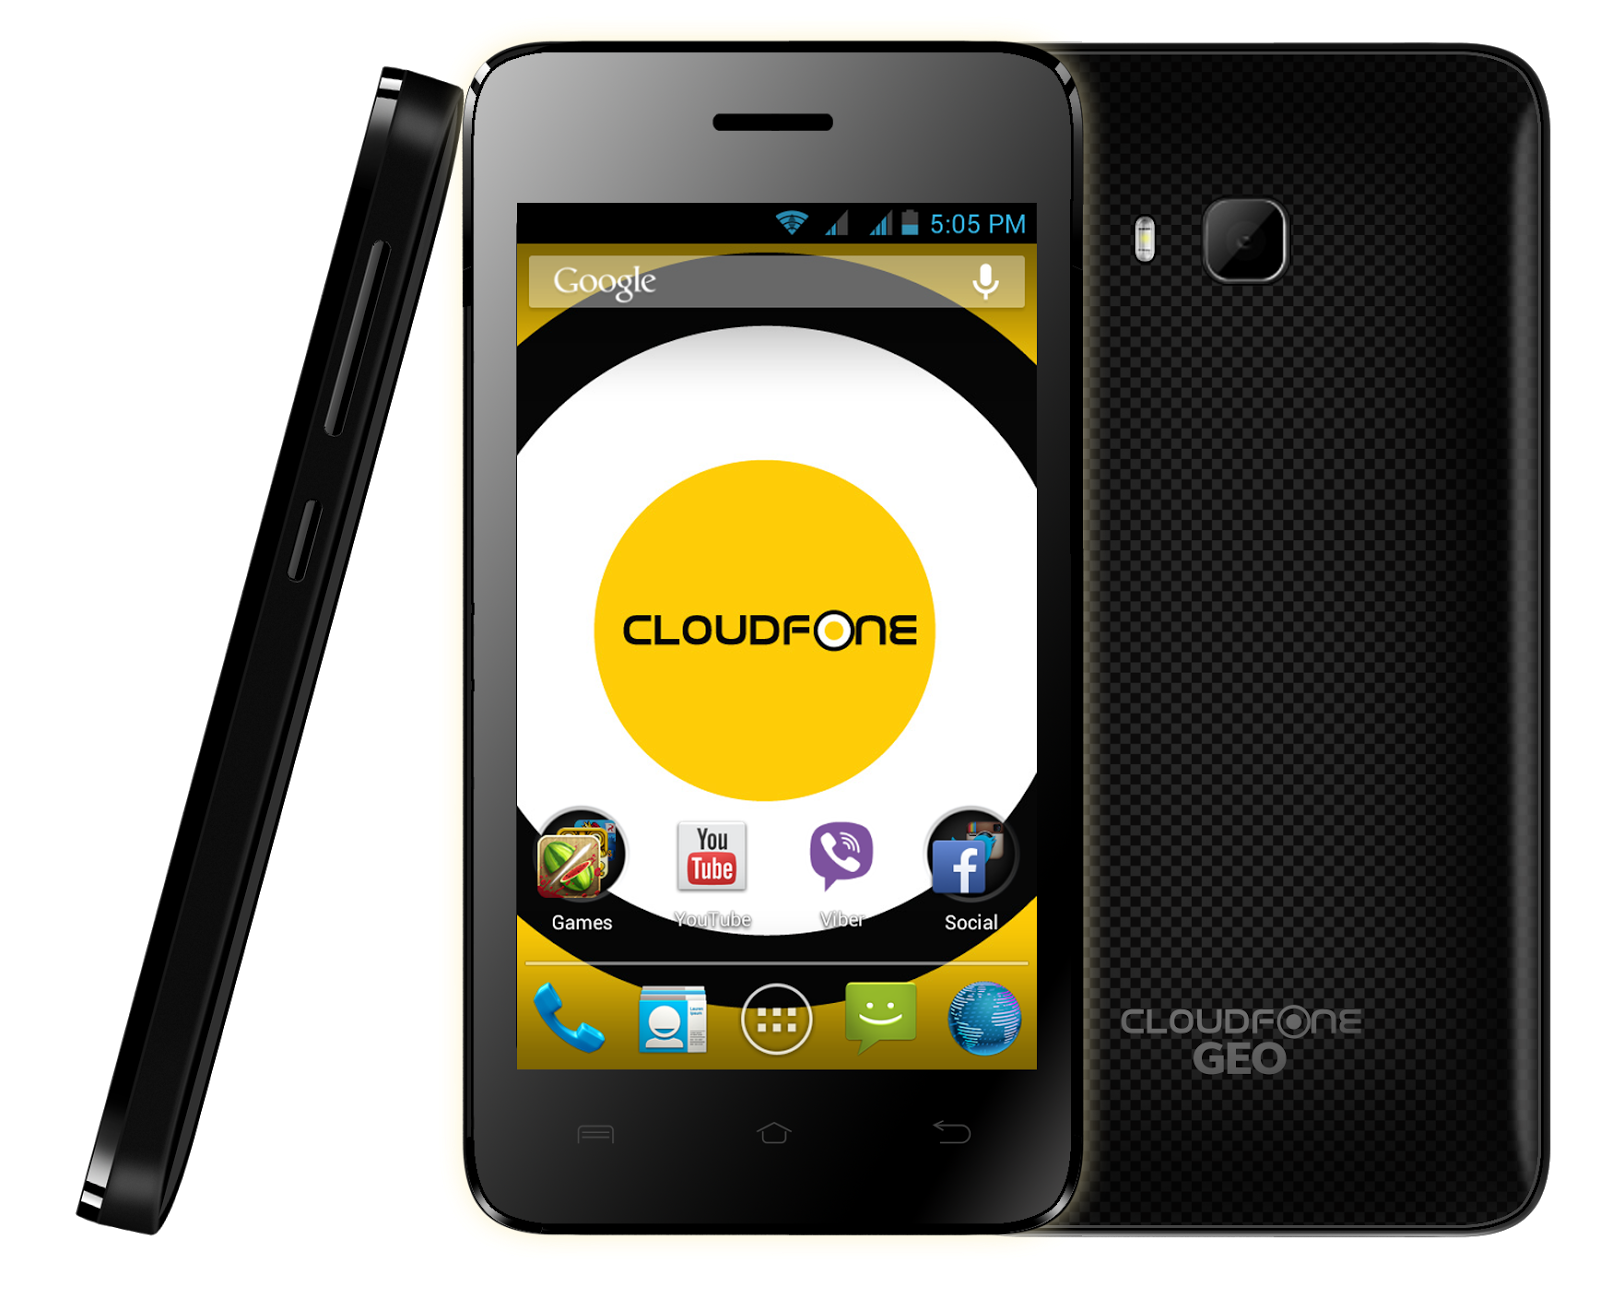 CloudFone GEO 401q+ Specs, Price and Availability